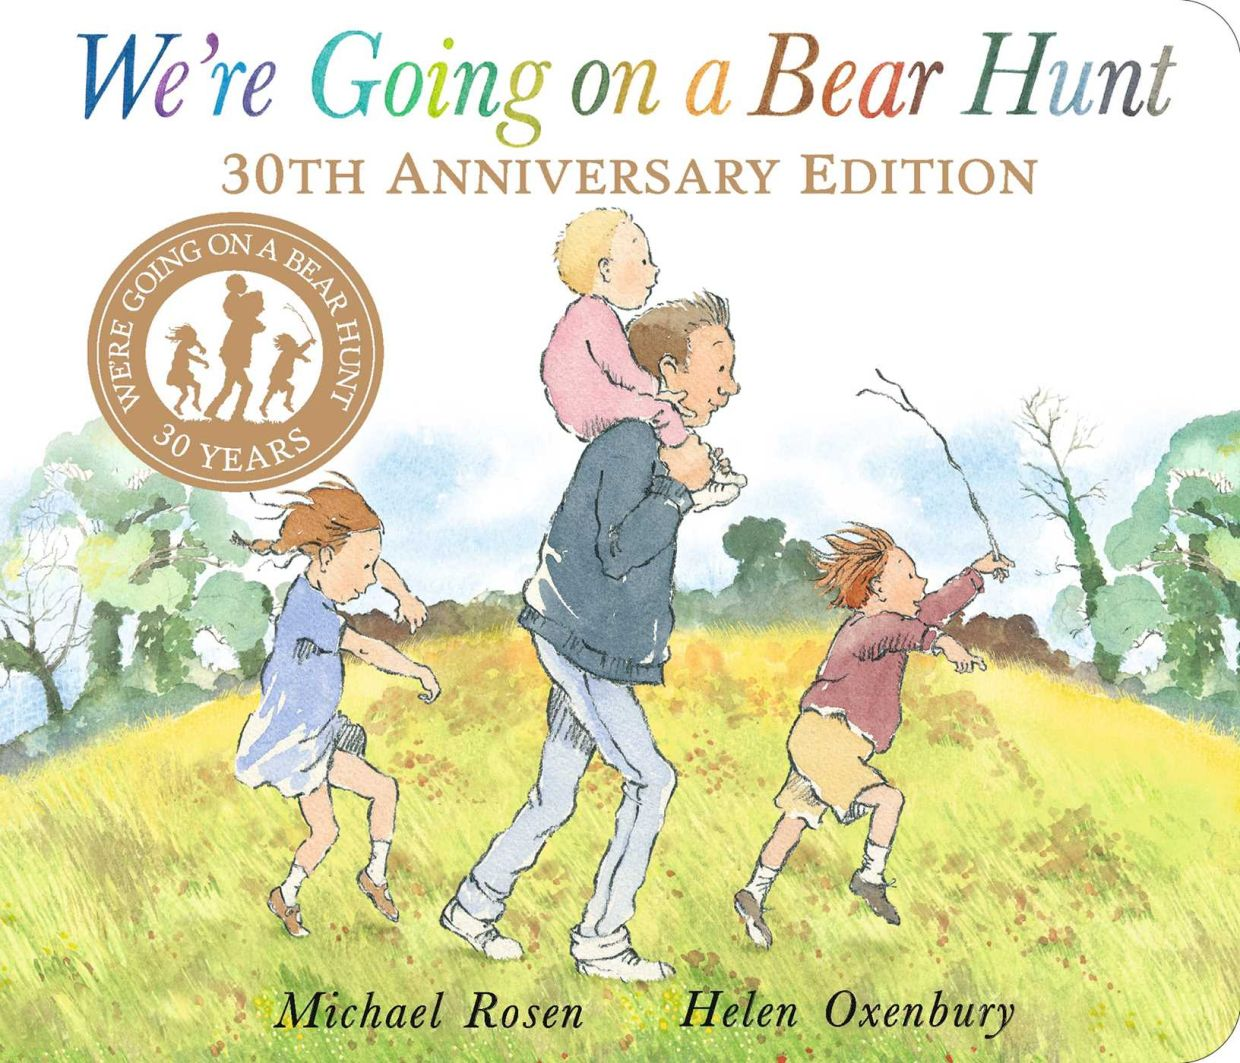 Michael Rosen's book which has inspired a global 'bear hunt' during these Covid-19 times.